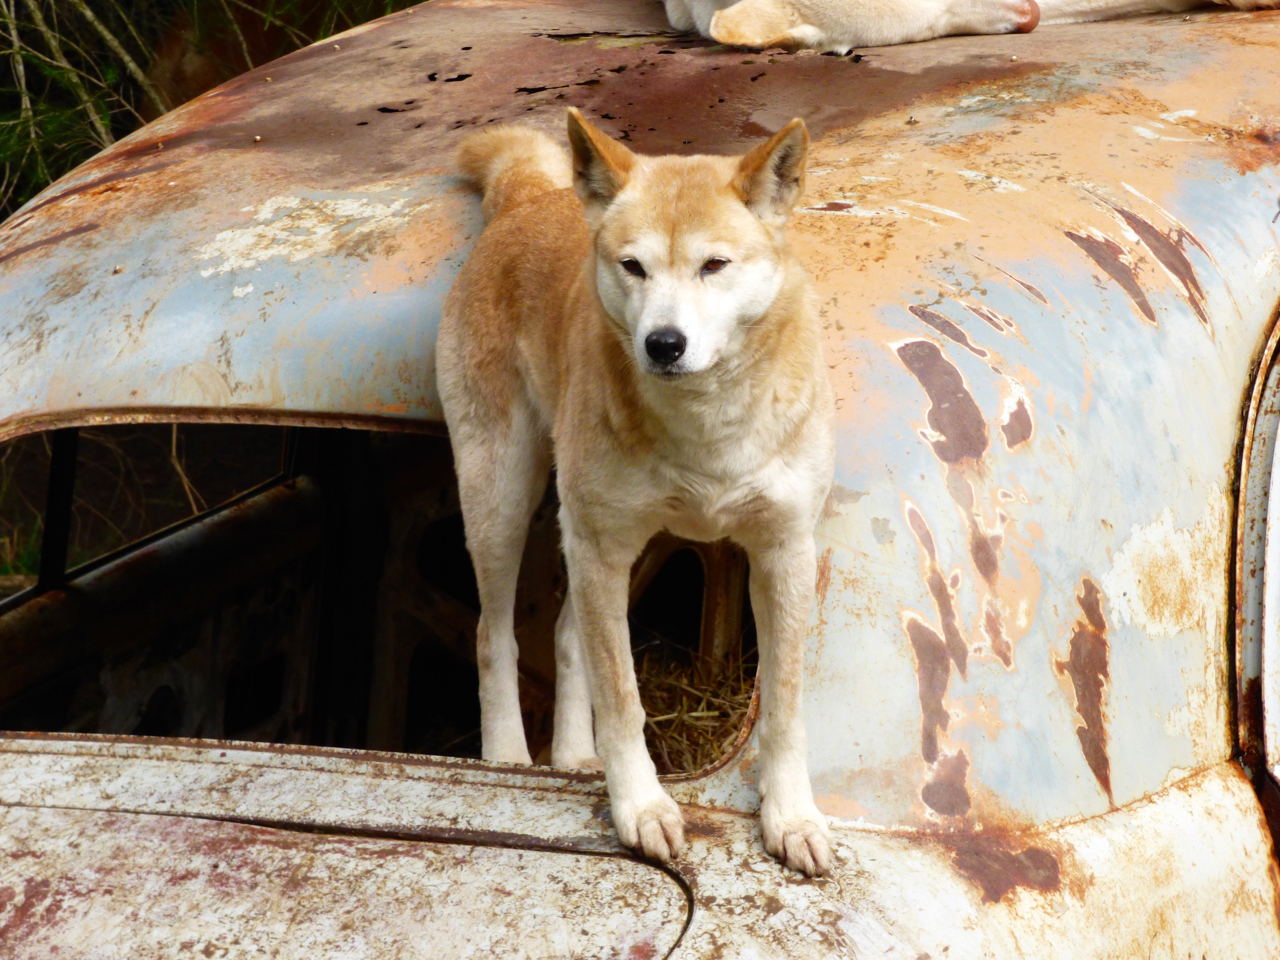 Dingo on a rusted, old car in Australia.